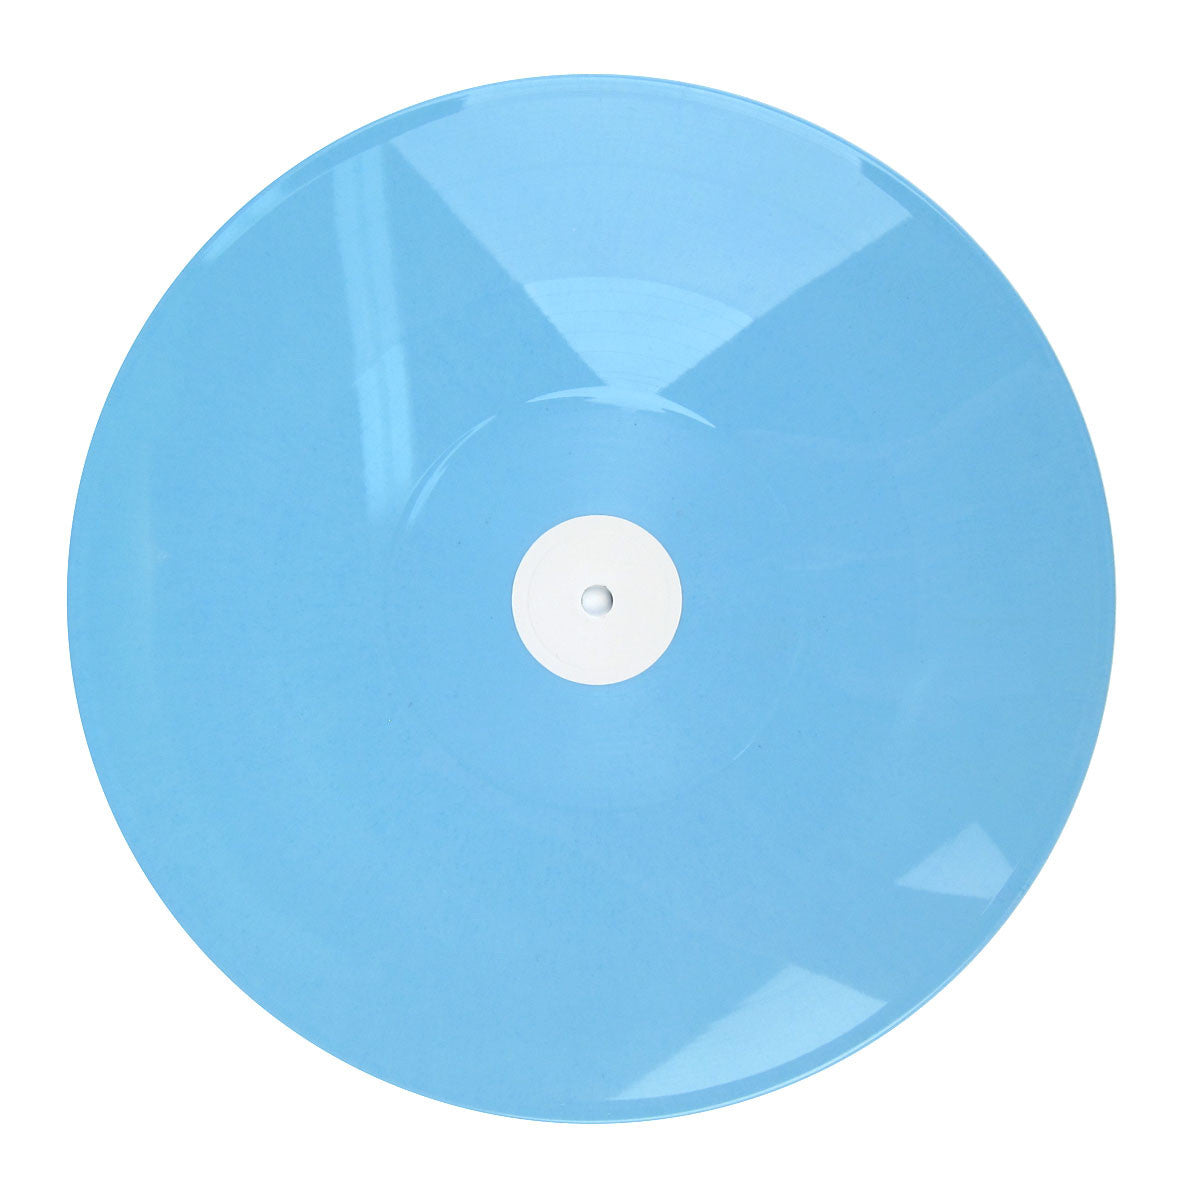 Acasual: Spring Theory Remix EP (Move D, Colored Vinyl) Vinyl 10""